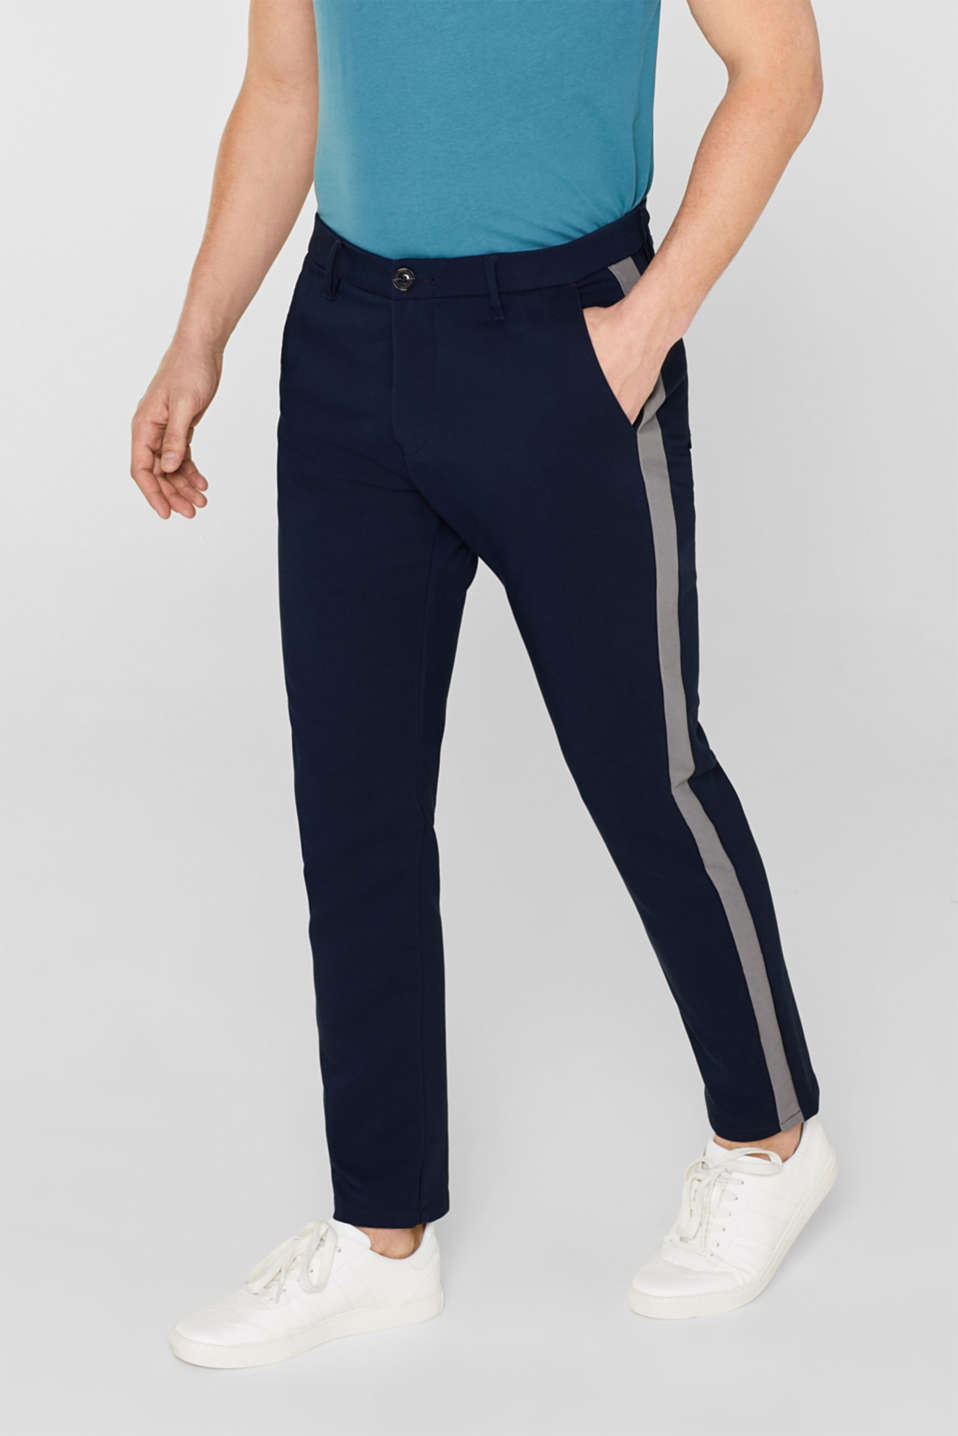 Esprit - Stretch trousers with tuxedo stripes